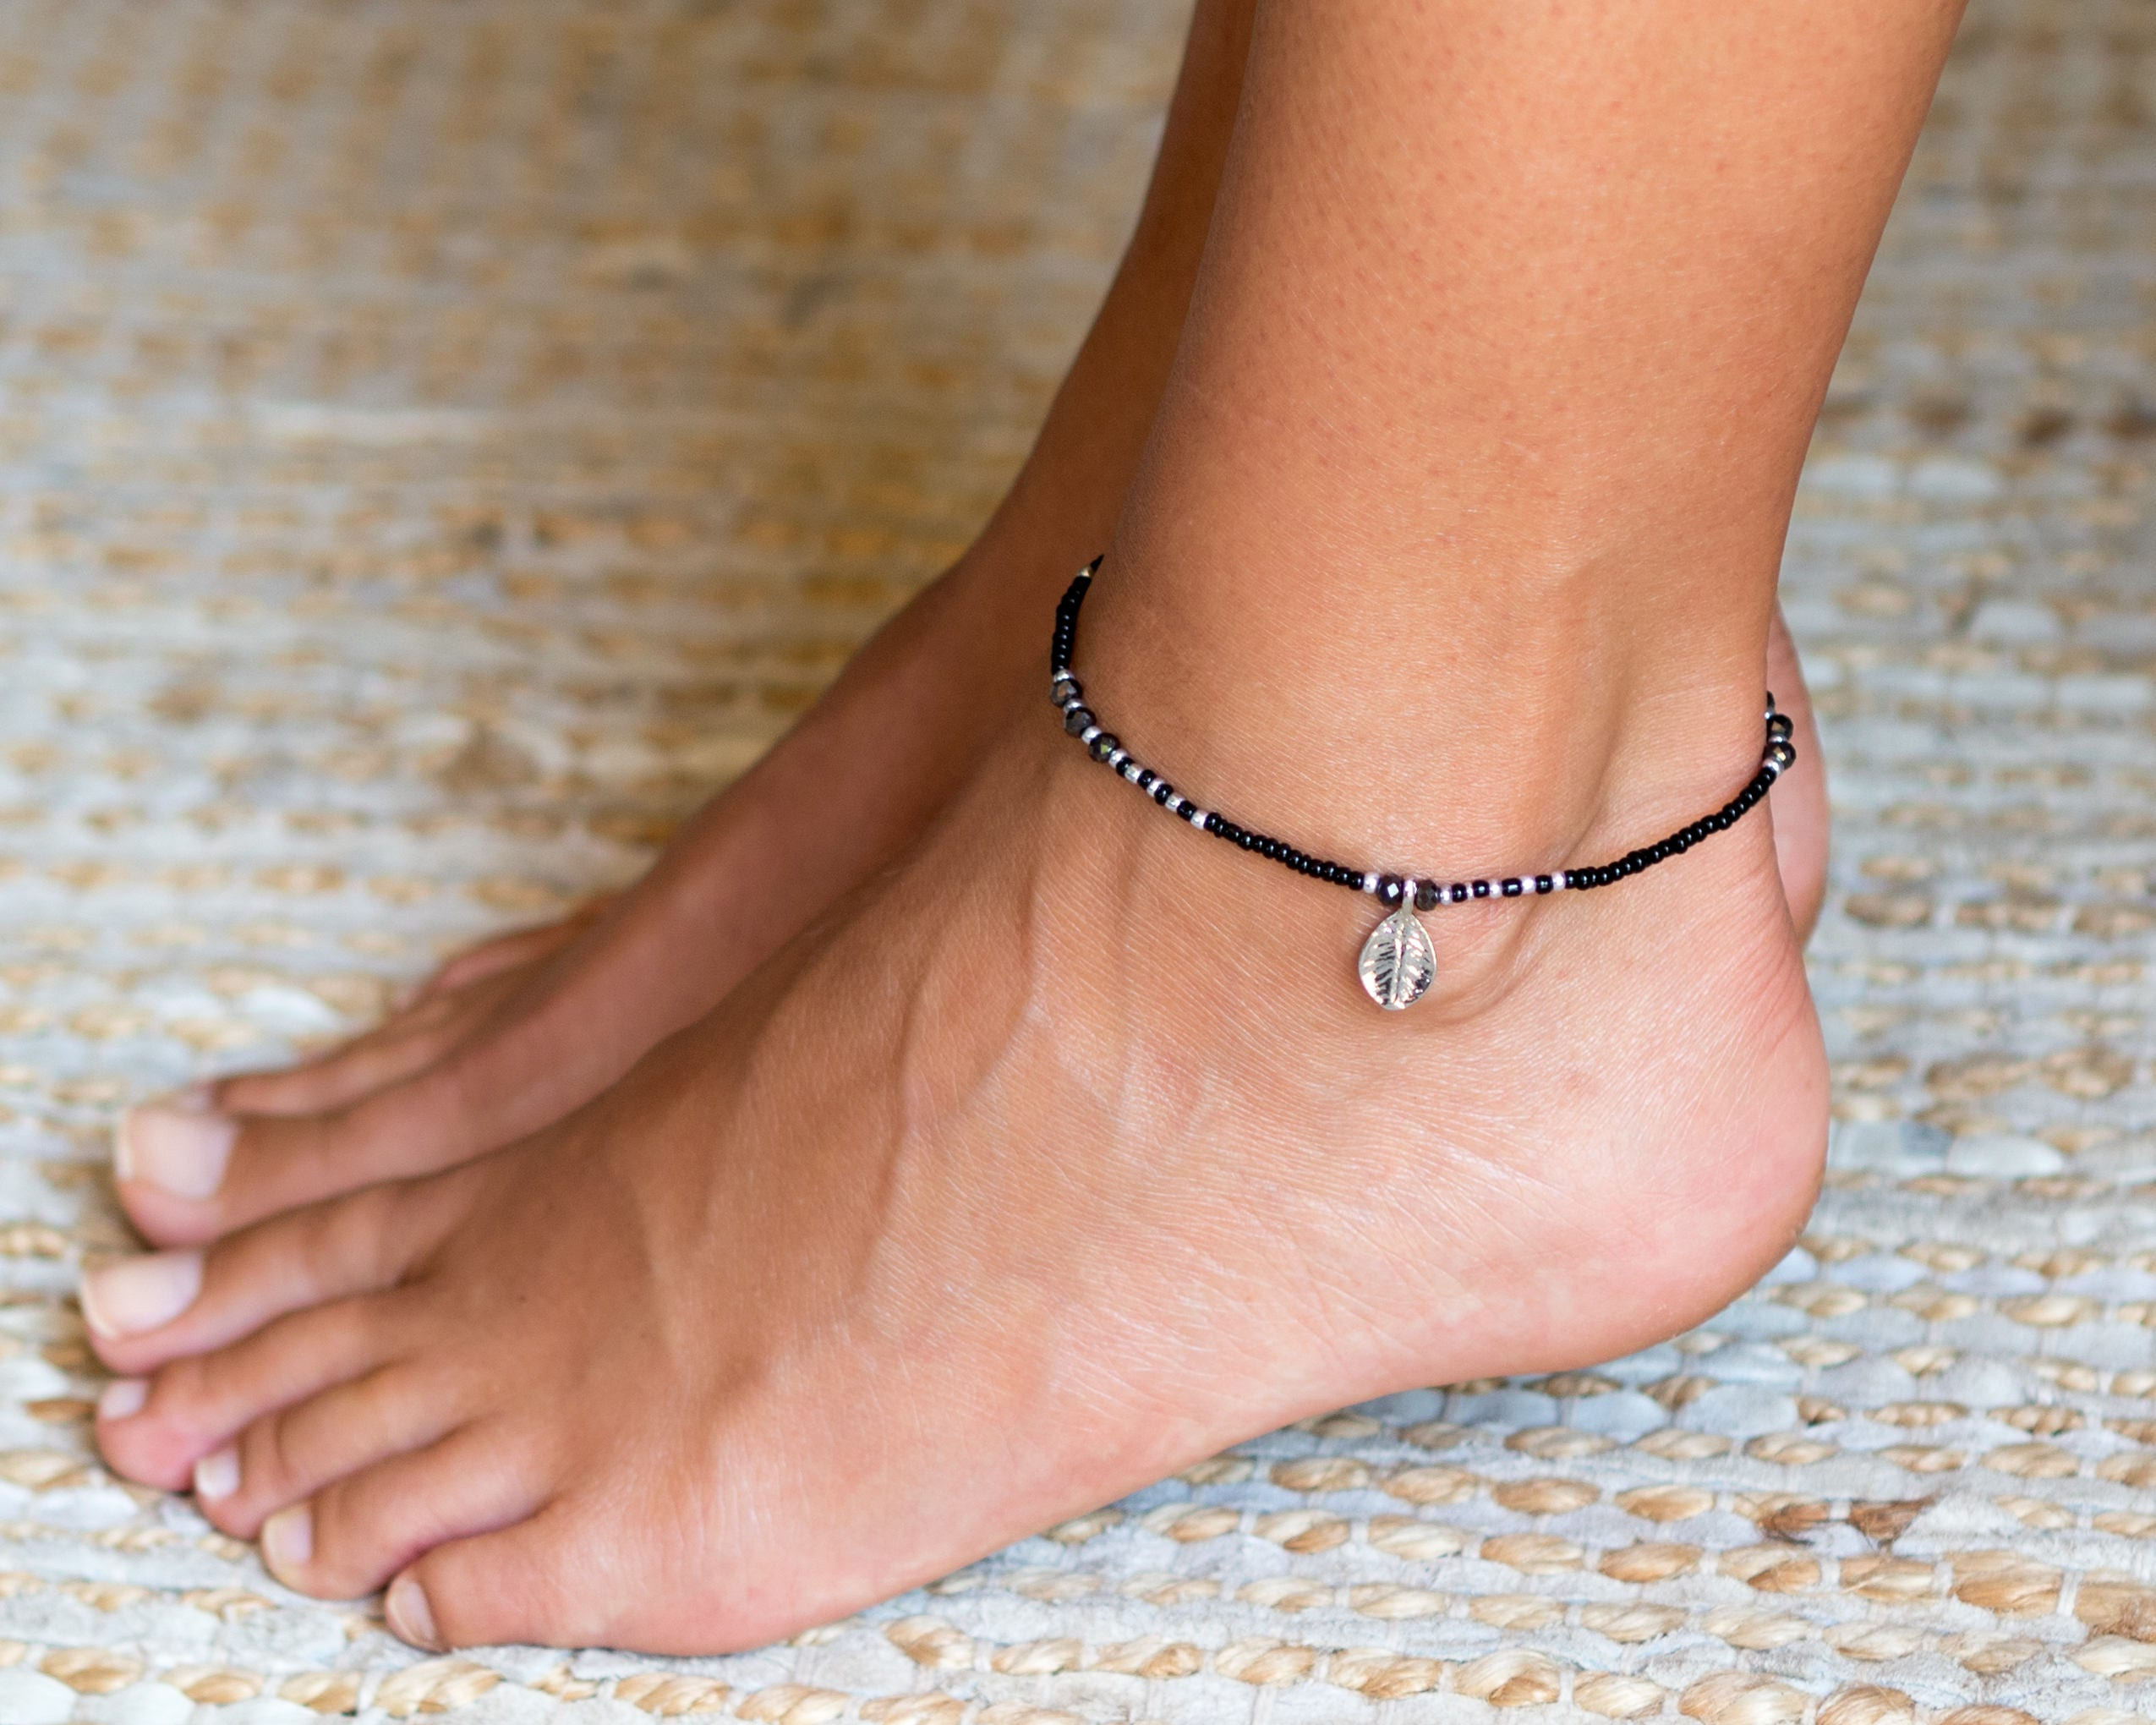 buy amazing anklet online designer create looks to products elegance adding anklets silver